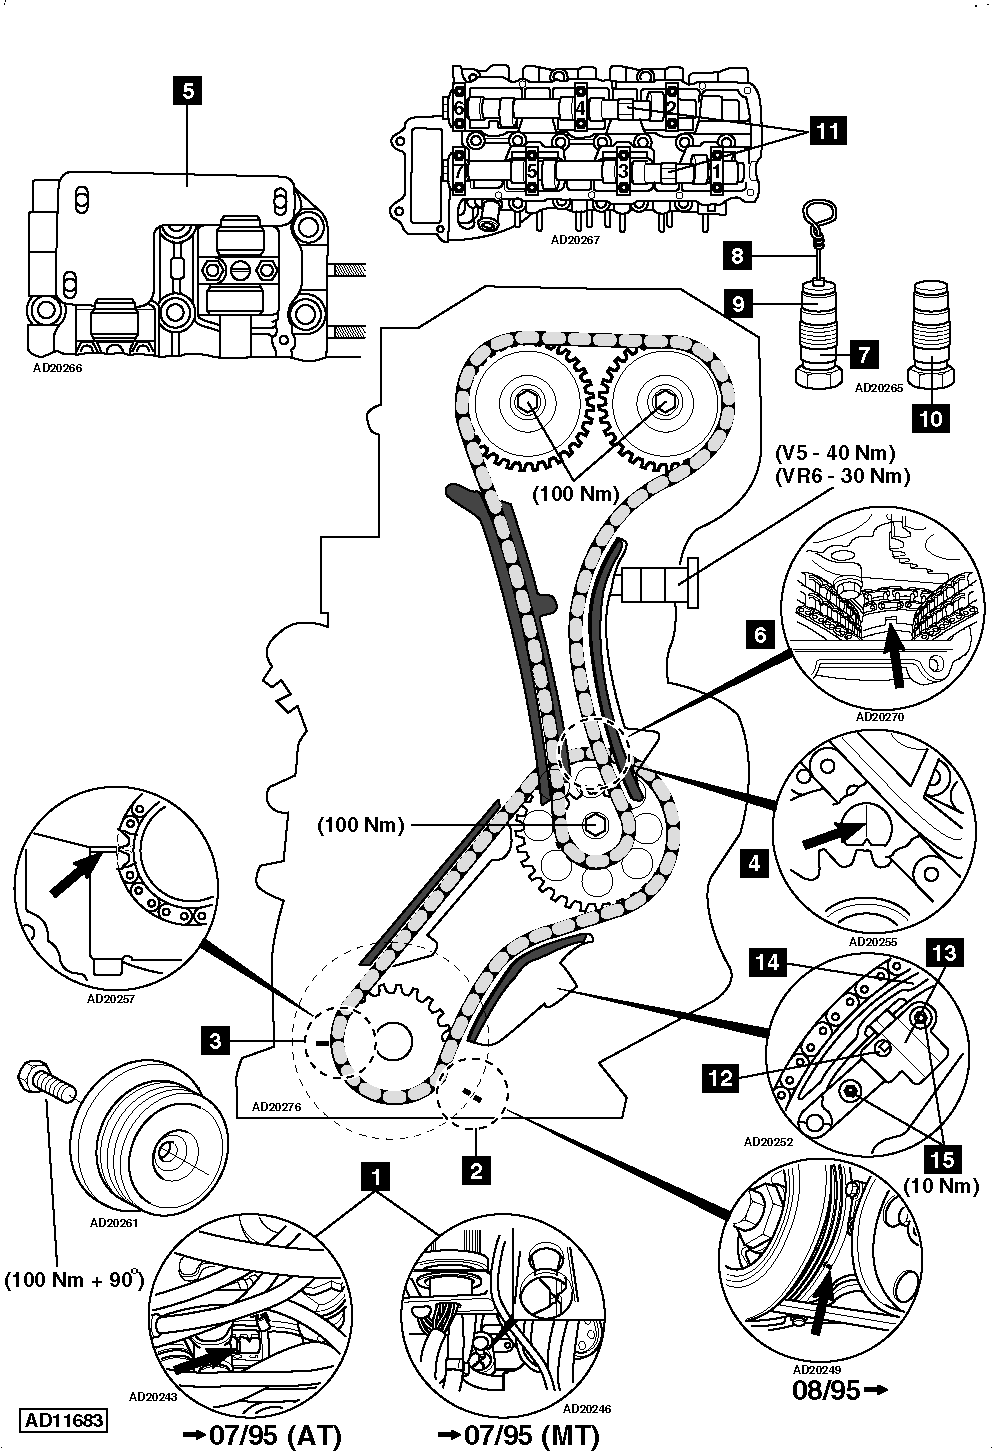 hight resolution of vr6 engine timing diagram wiring diagram forward vr6 engine timing diagram